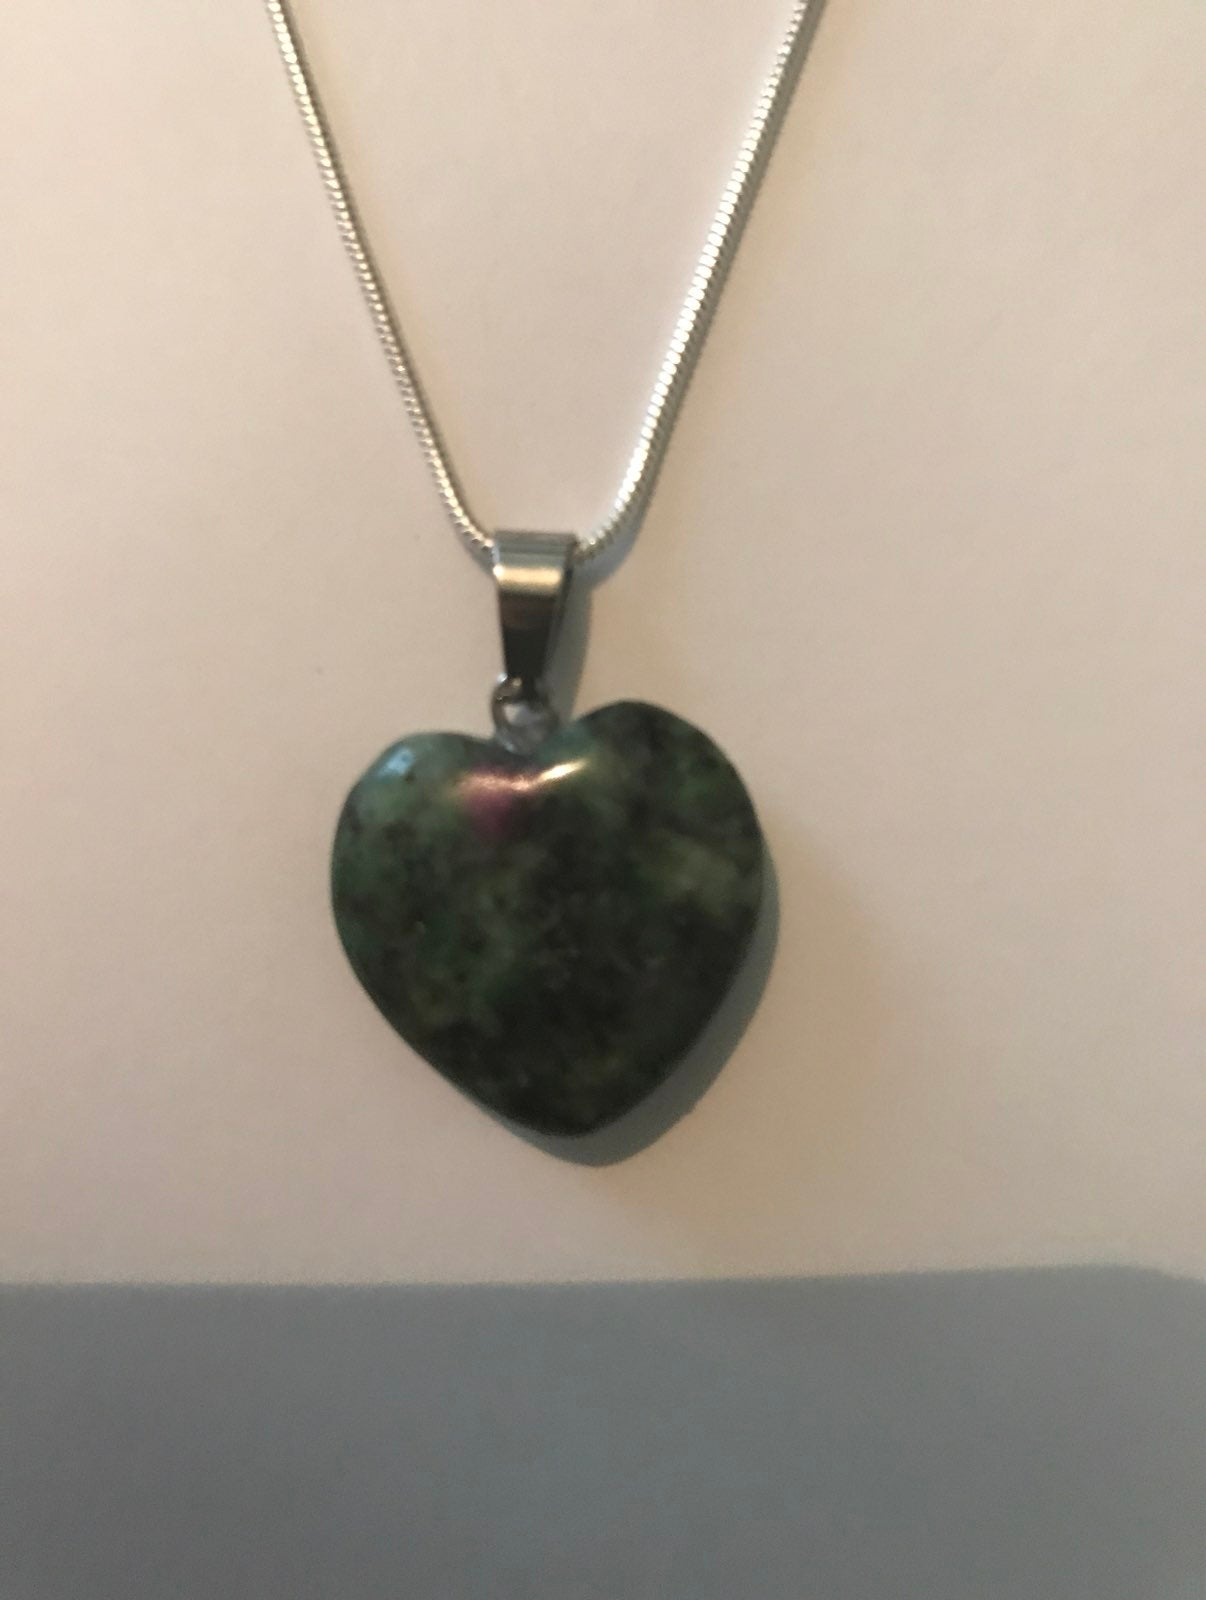 Agate heart necklace with chain